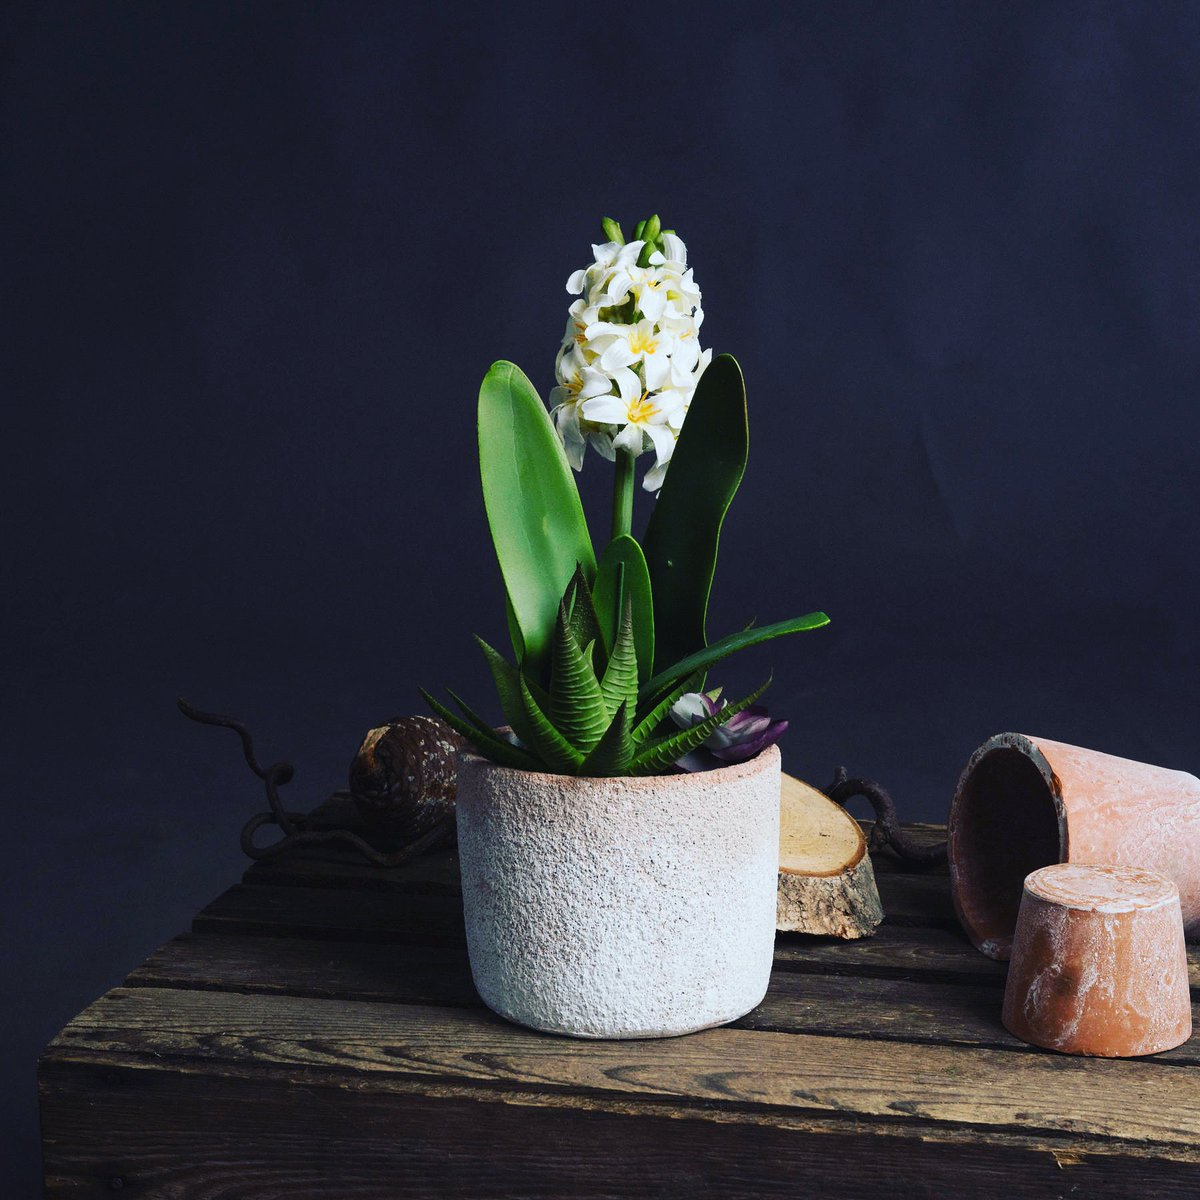 Beautiful, elegant (and shhh....artificial!). Our White Potted Hyacinth is set to stun in a stoneware pot surrounded by miniature succulent plants https://bit.ly/2ZFYEPU  Bisou x #homedecor #interiordesign #giftideas #giftsforher #homegifts #artificialplants #hyacinth #succulentspic.twitter.com/9K04jGyUT2